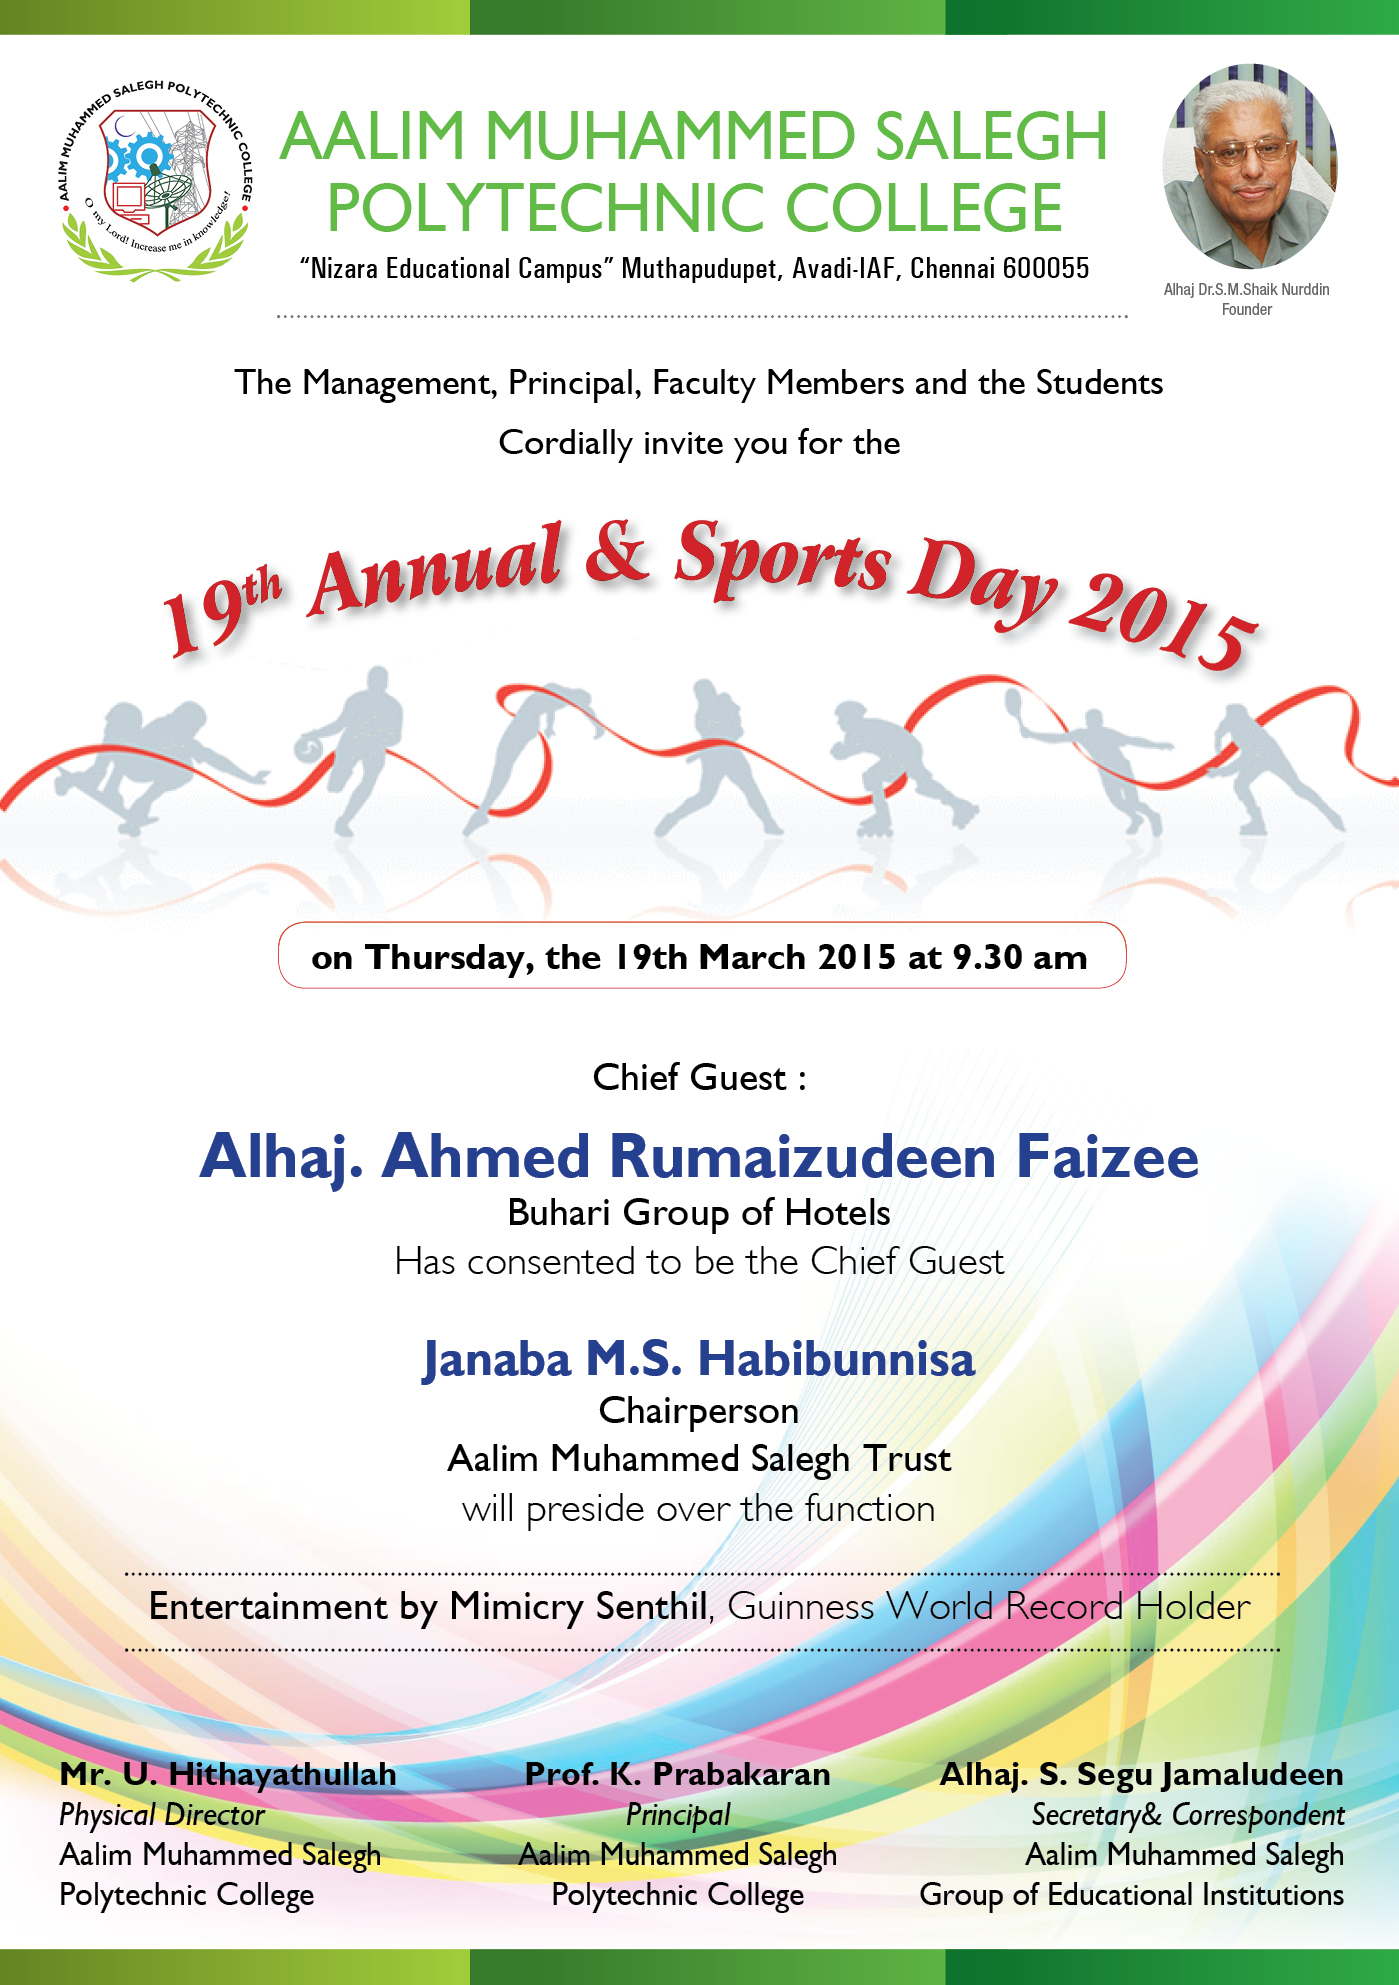 19th Annual And Sports Day 2015 Aalim Muhammed Salegh Polytechnic